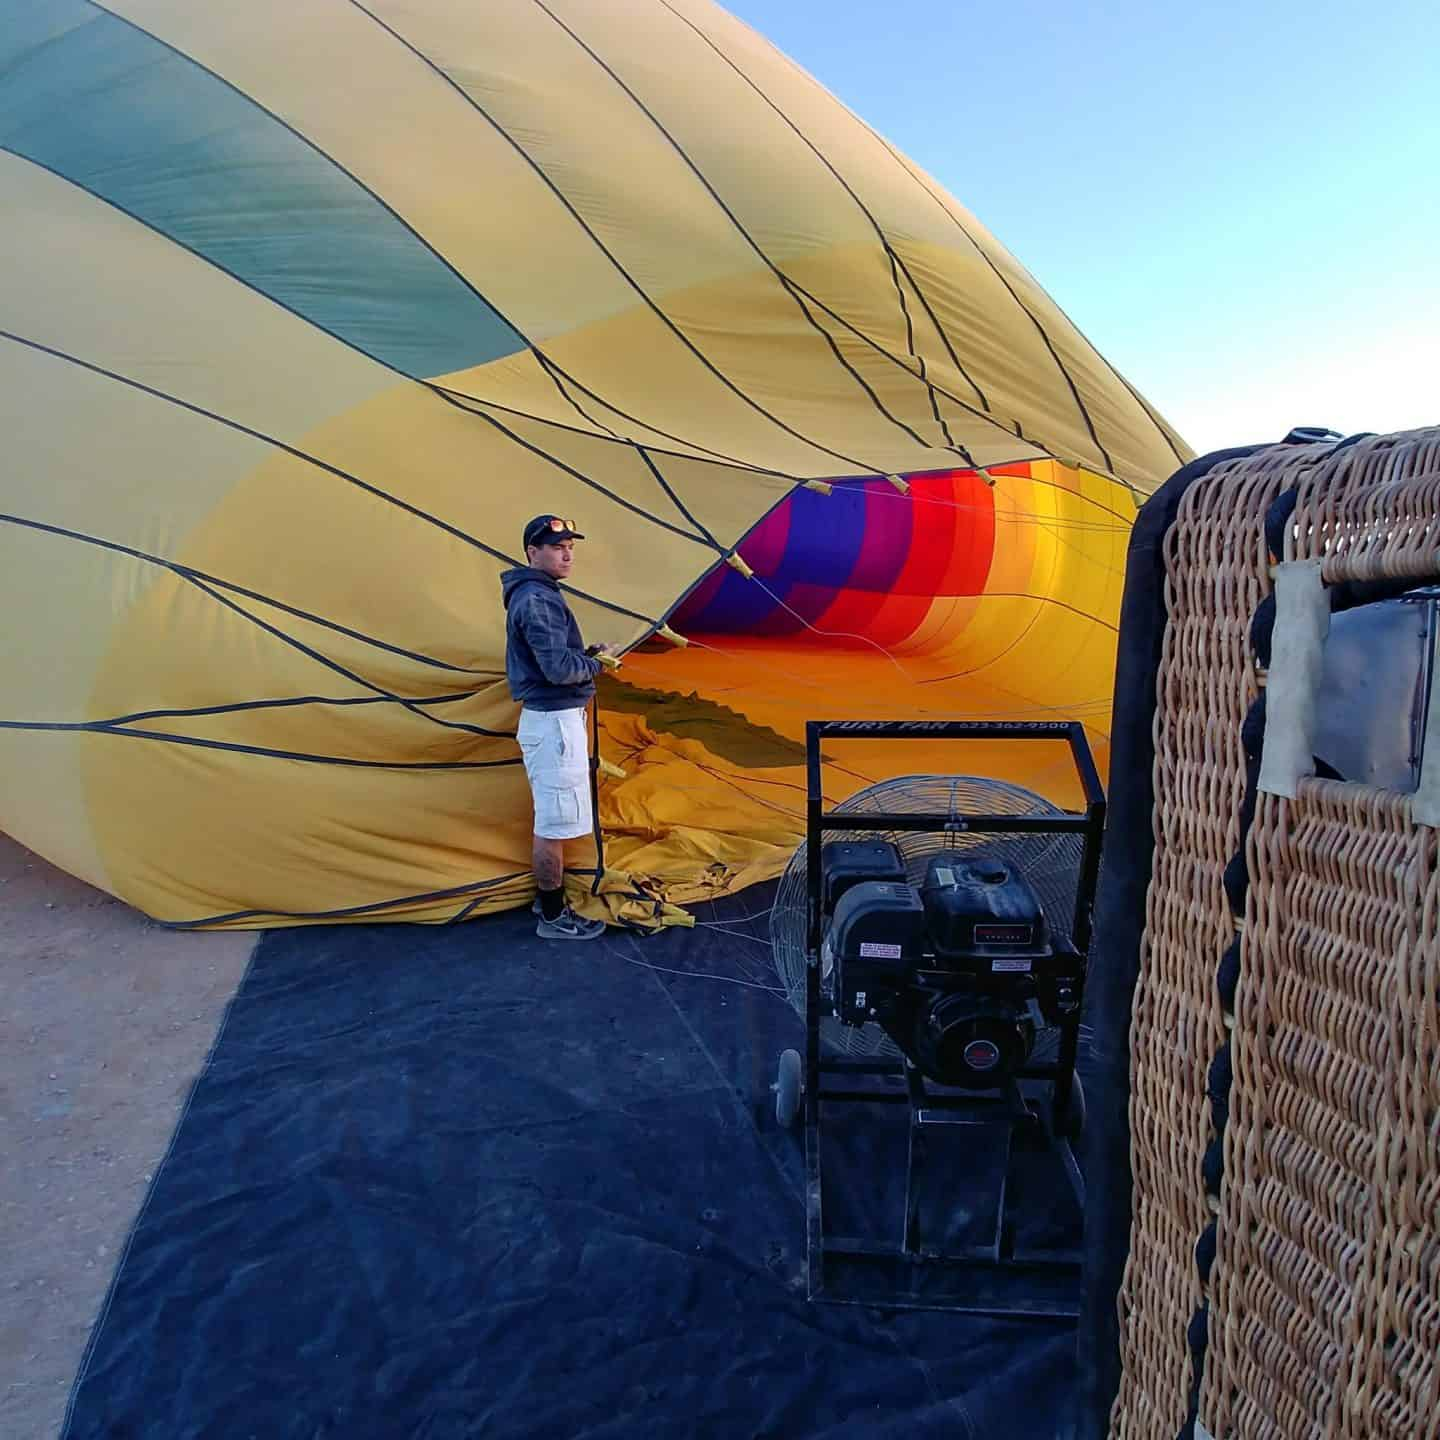 Hot Air Balloon Ride With Hot Air Expeditions Arizona hot air balloon getting filled with hot air